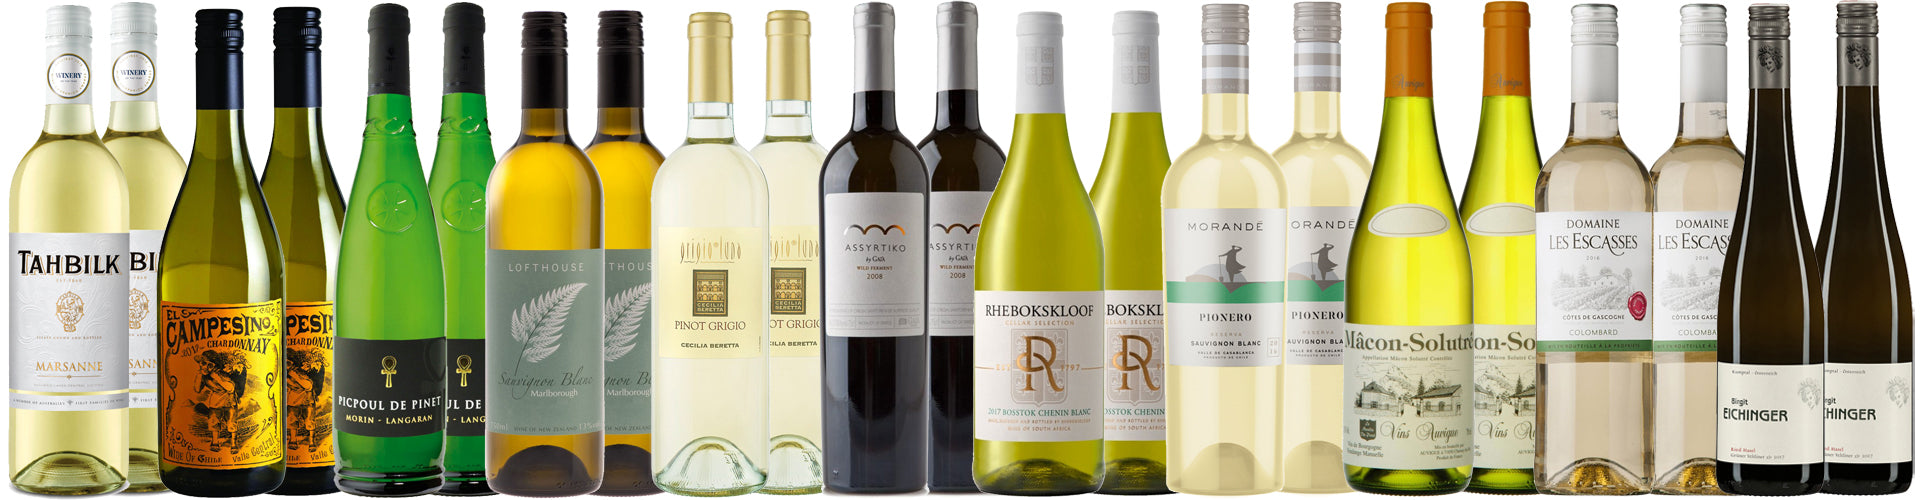 Collection of White Wine Bottles in various styles and grape varieties